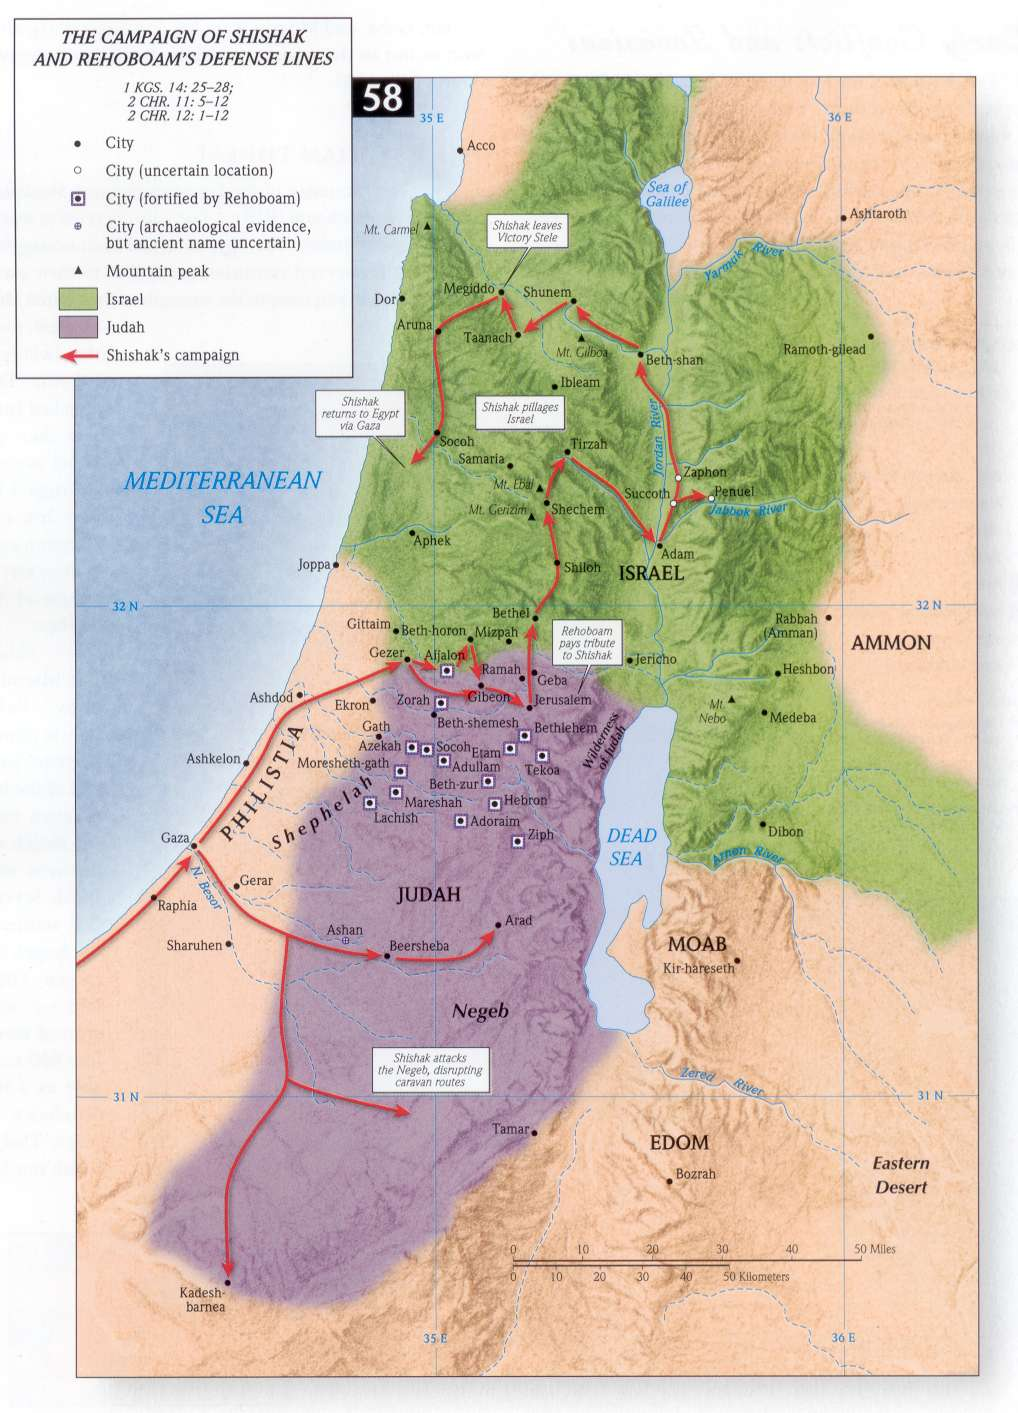 Bible Maps | Precept Austin on israel split into two kingdoms, map of ancient canaan, map of judah, map moab bethlehem judah, israel divided into two kingdoms,